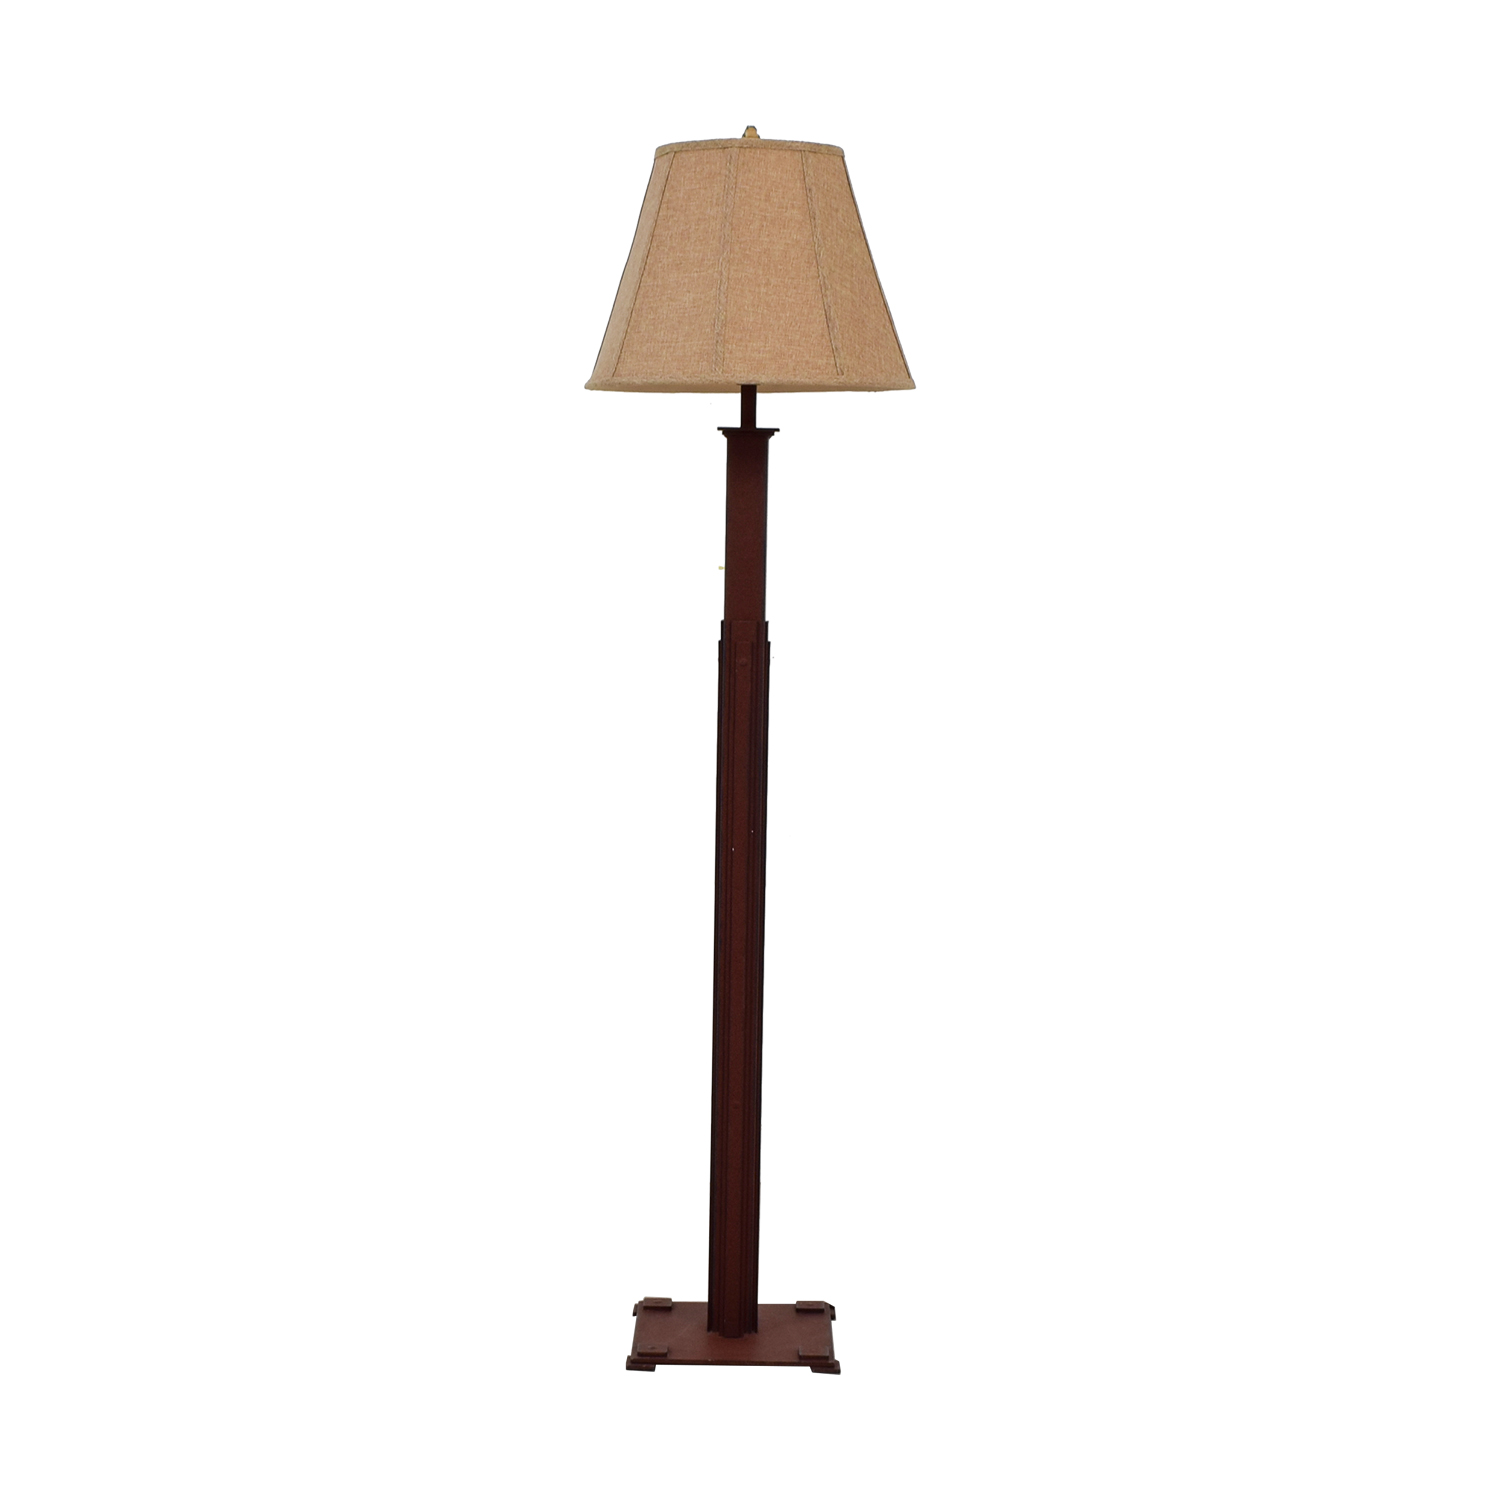 Distressed Burlap Shade Floor Lamp for sale